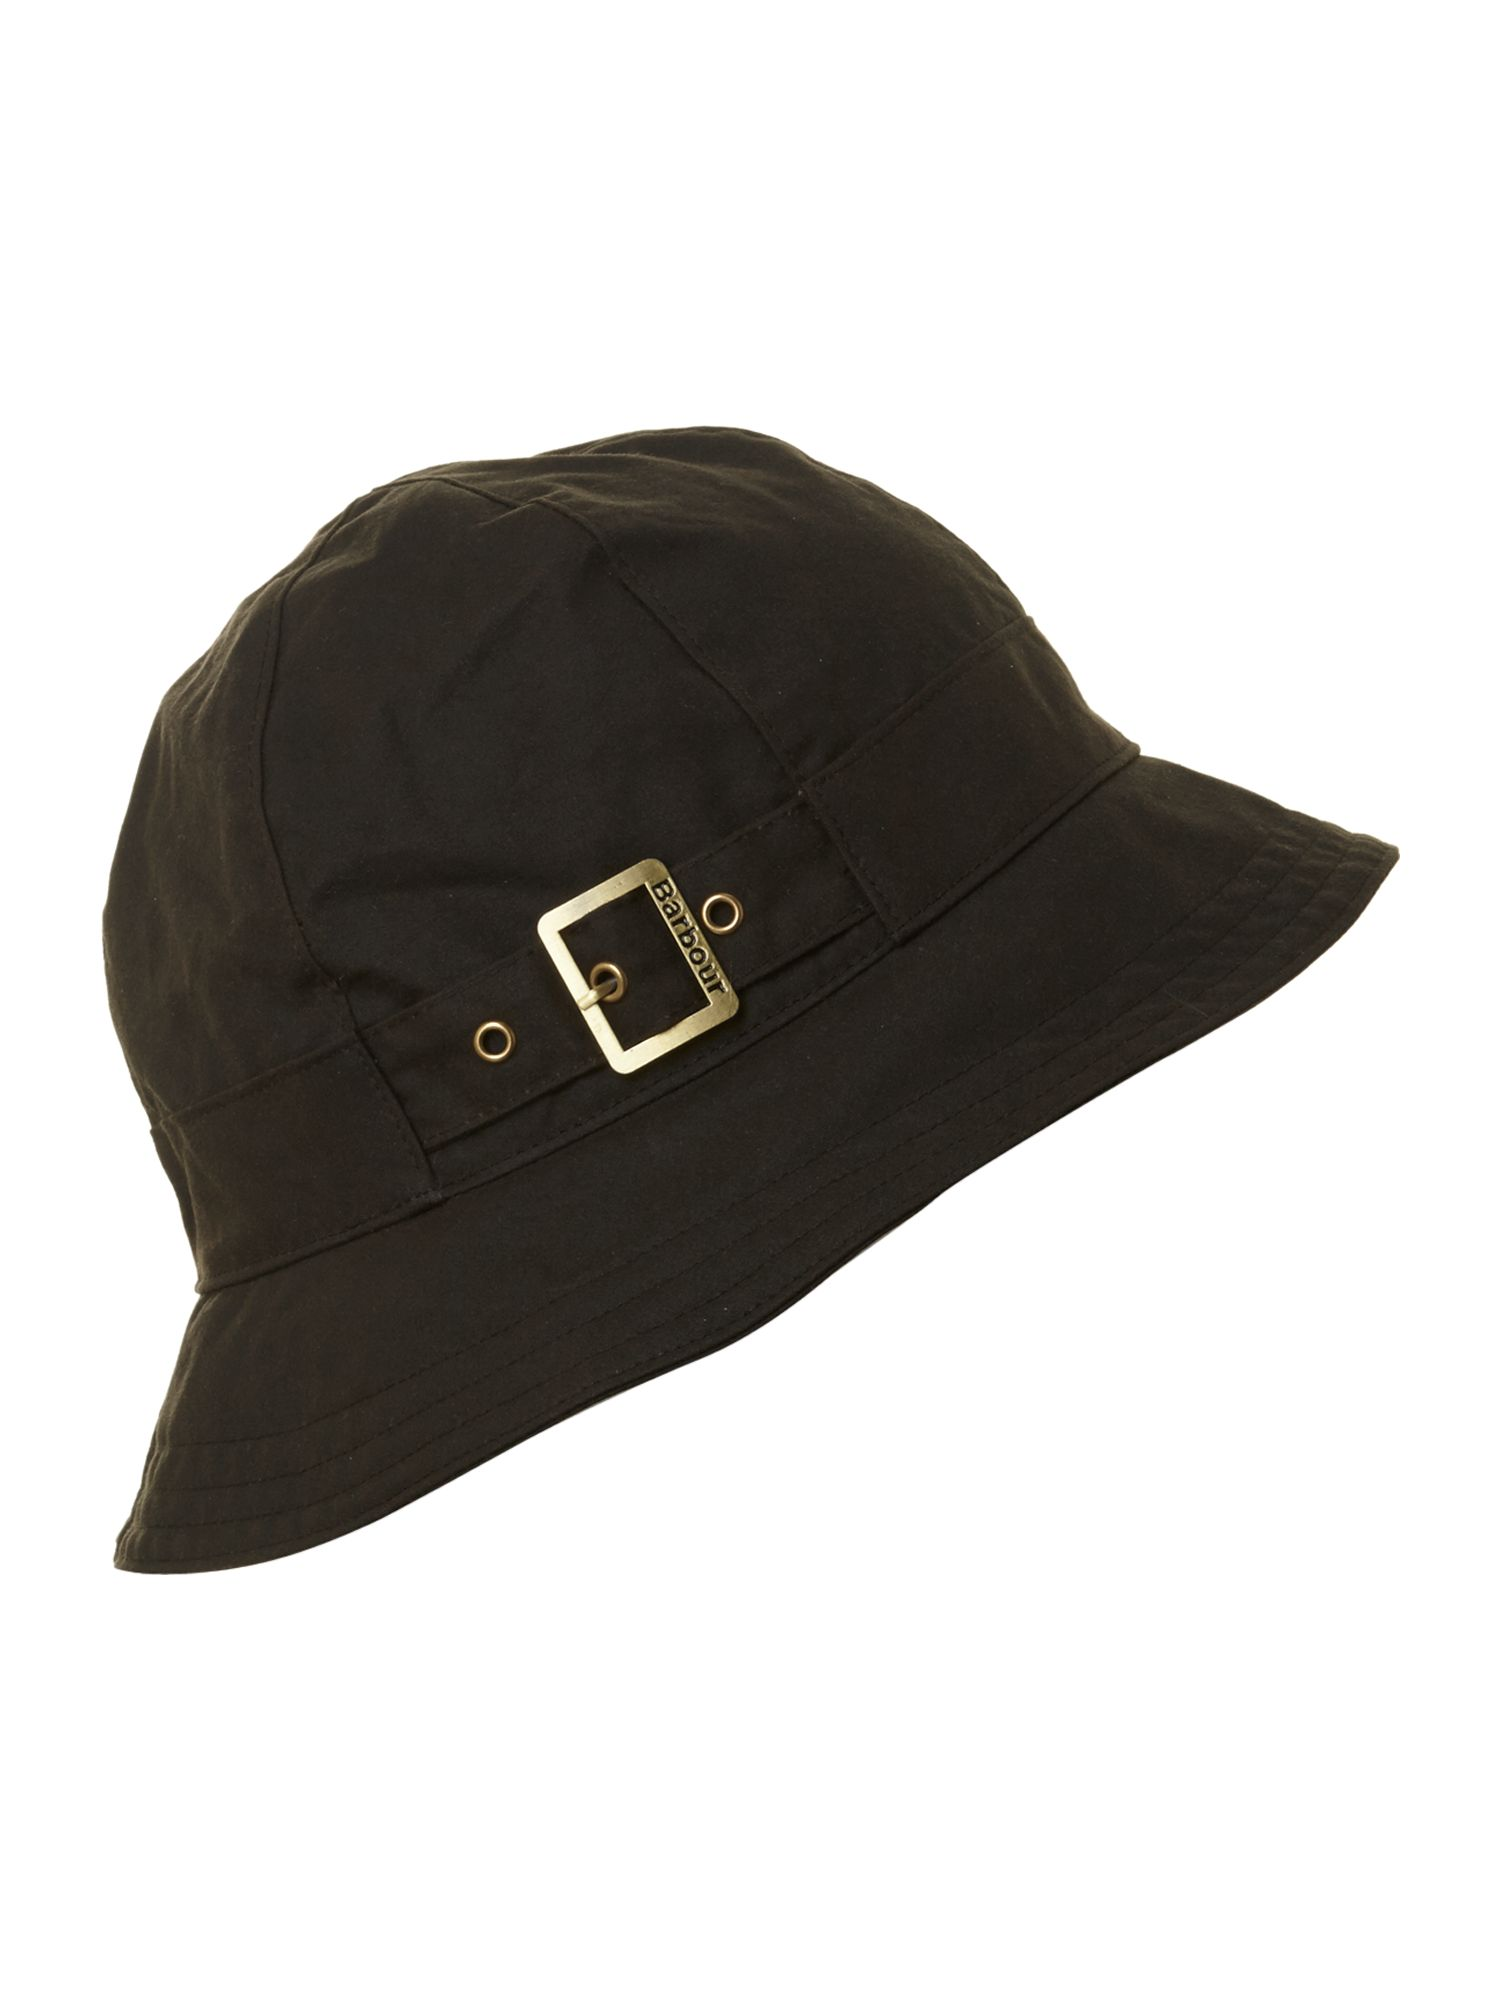 Wax trench hat